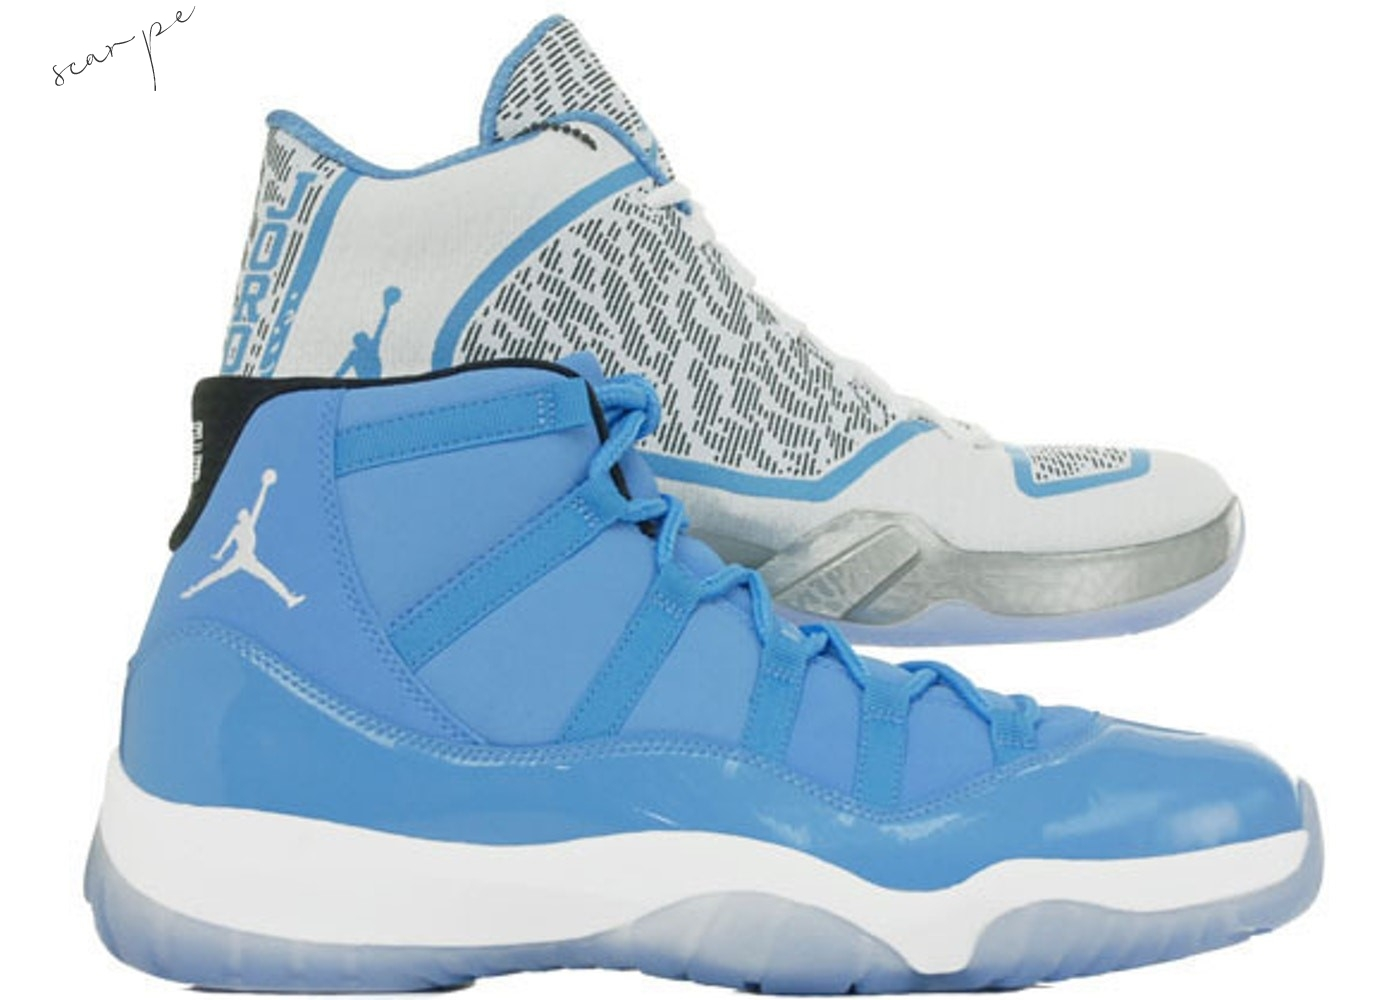 Vendite Air Jordan Ultimate Gift Of Flight Pack (11/29) Bianca Blu (717602-900) Scarpe Online